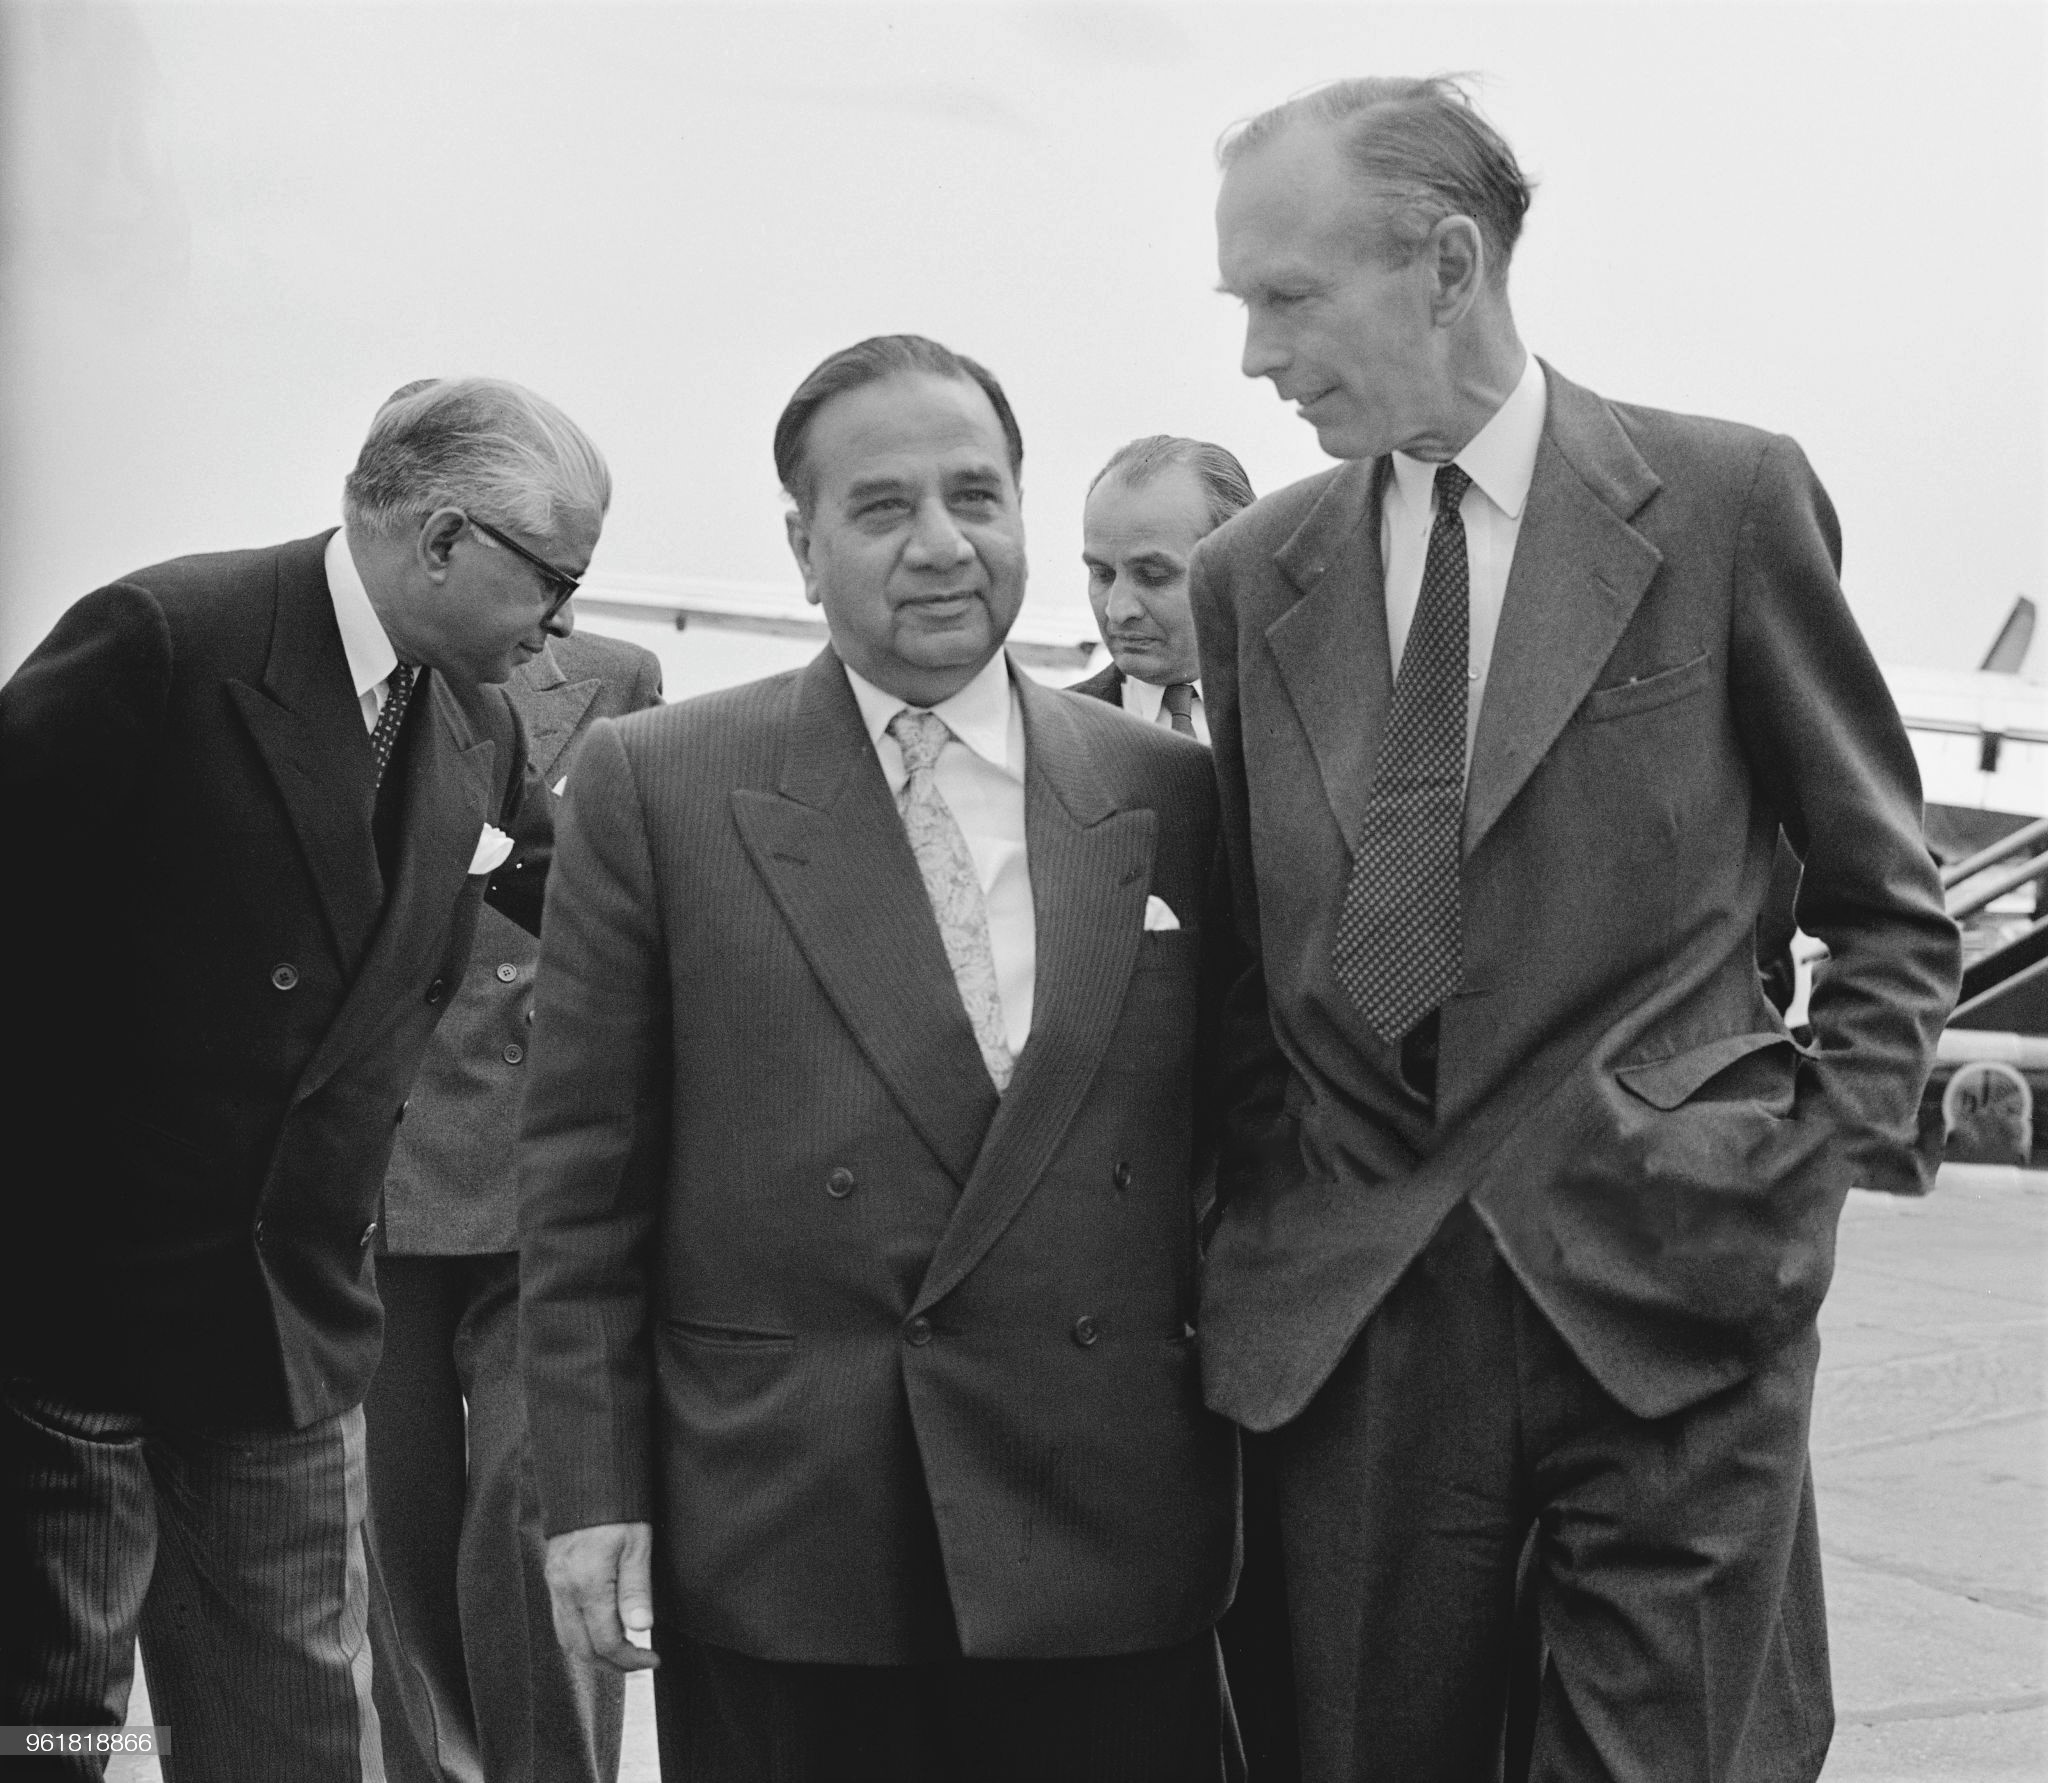 Huseyn Shaheed Suhrawardy (1892 - 1963), the Prime Minister of Pakistan, is met by Alec Douglas-Home (1903 - 1995, right), the Secretary of State for Commonwealth Relations, upon his arrival at London Airport, 24th June 1957. Suhrawardy is in the UK to attend the Commonwealth Prime Ministers' Conference which opens the next day, 24th June 1957.